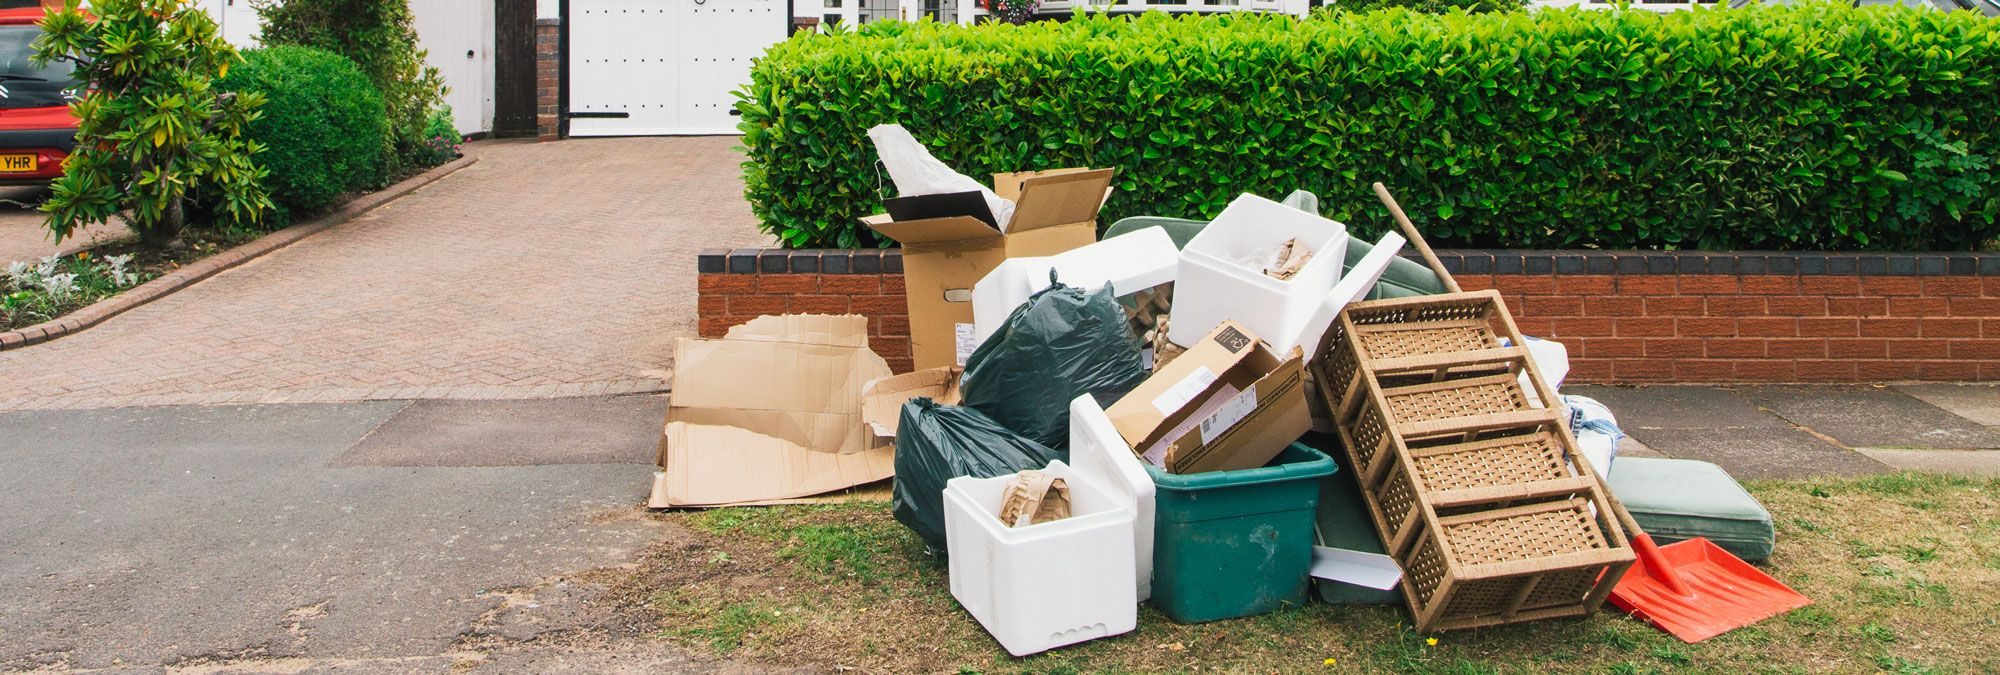 How Much Does Rubbish Removal Cost?